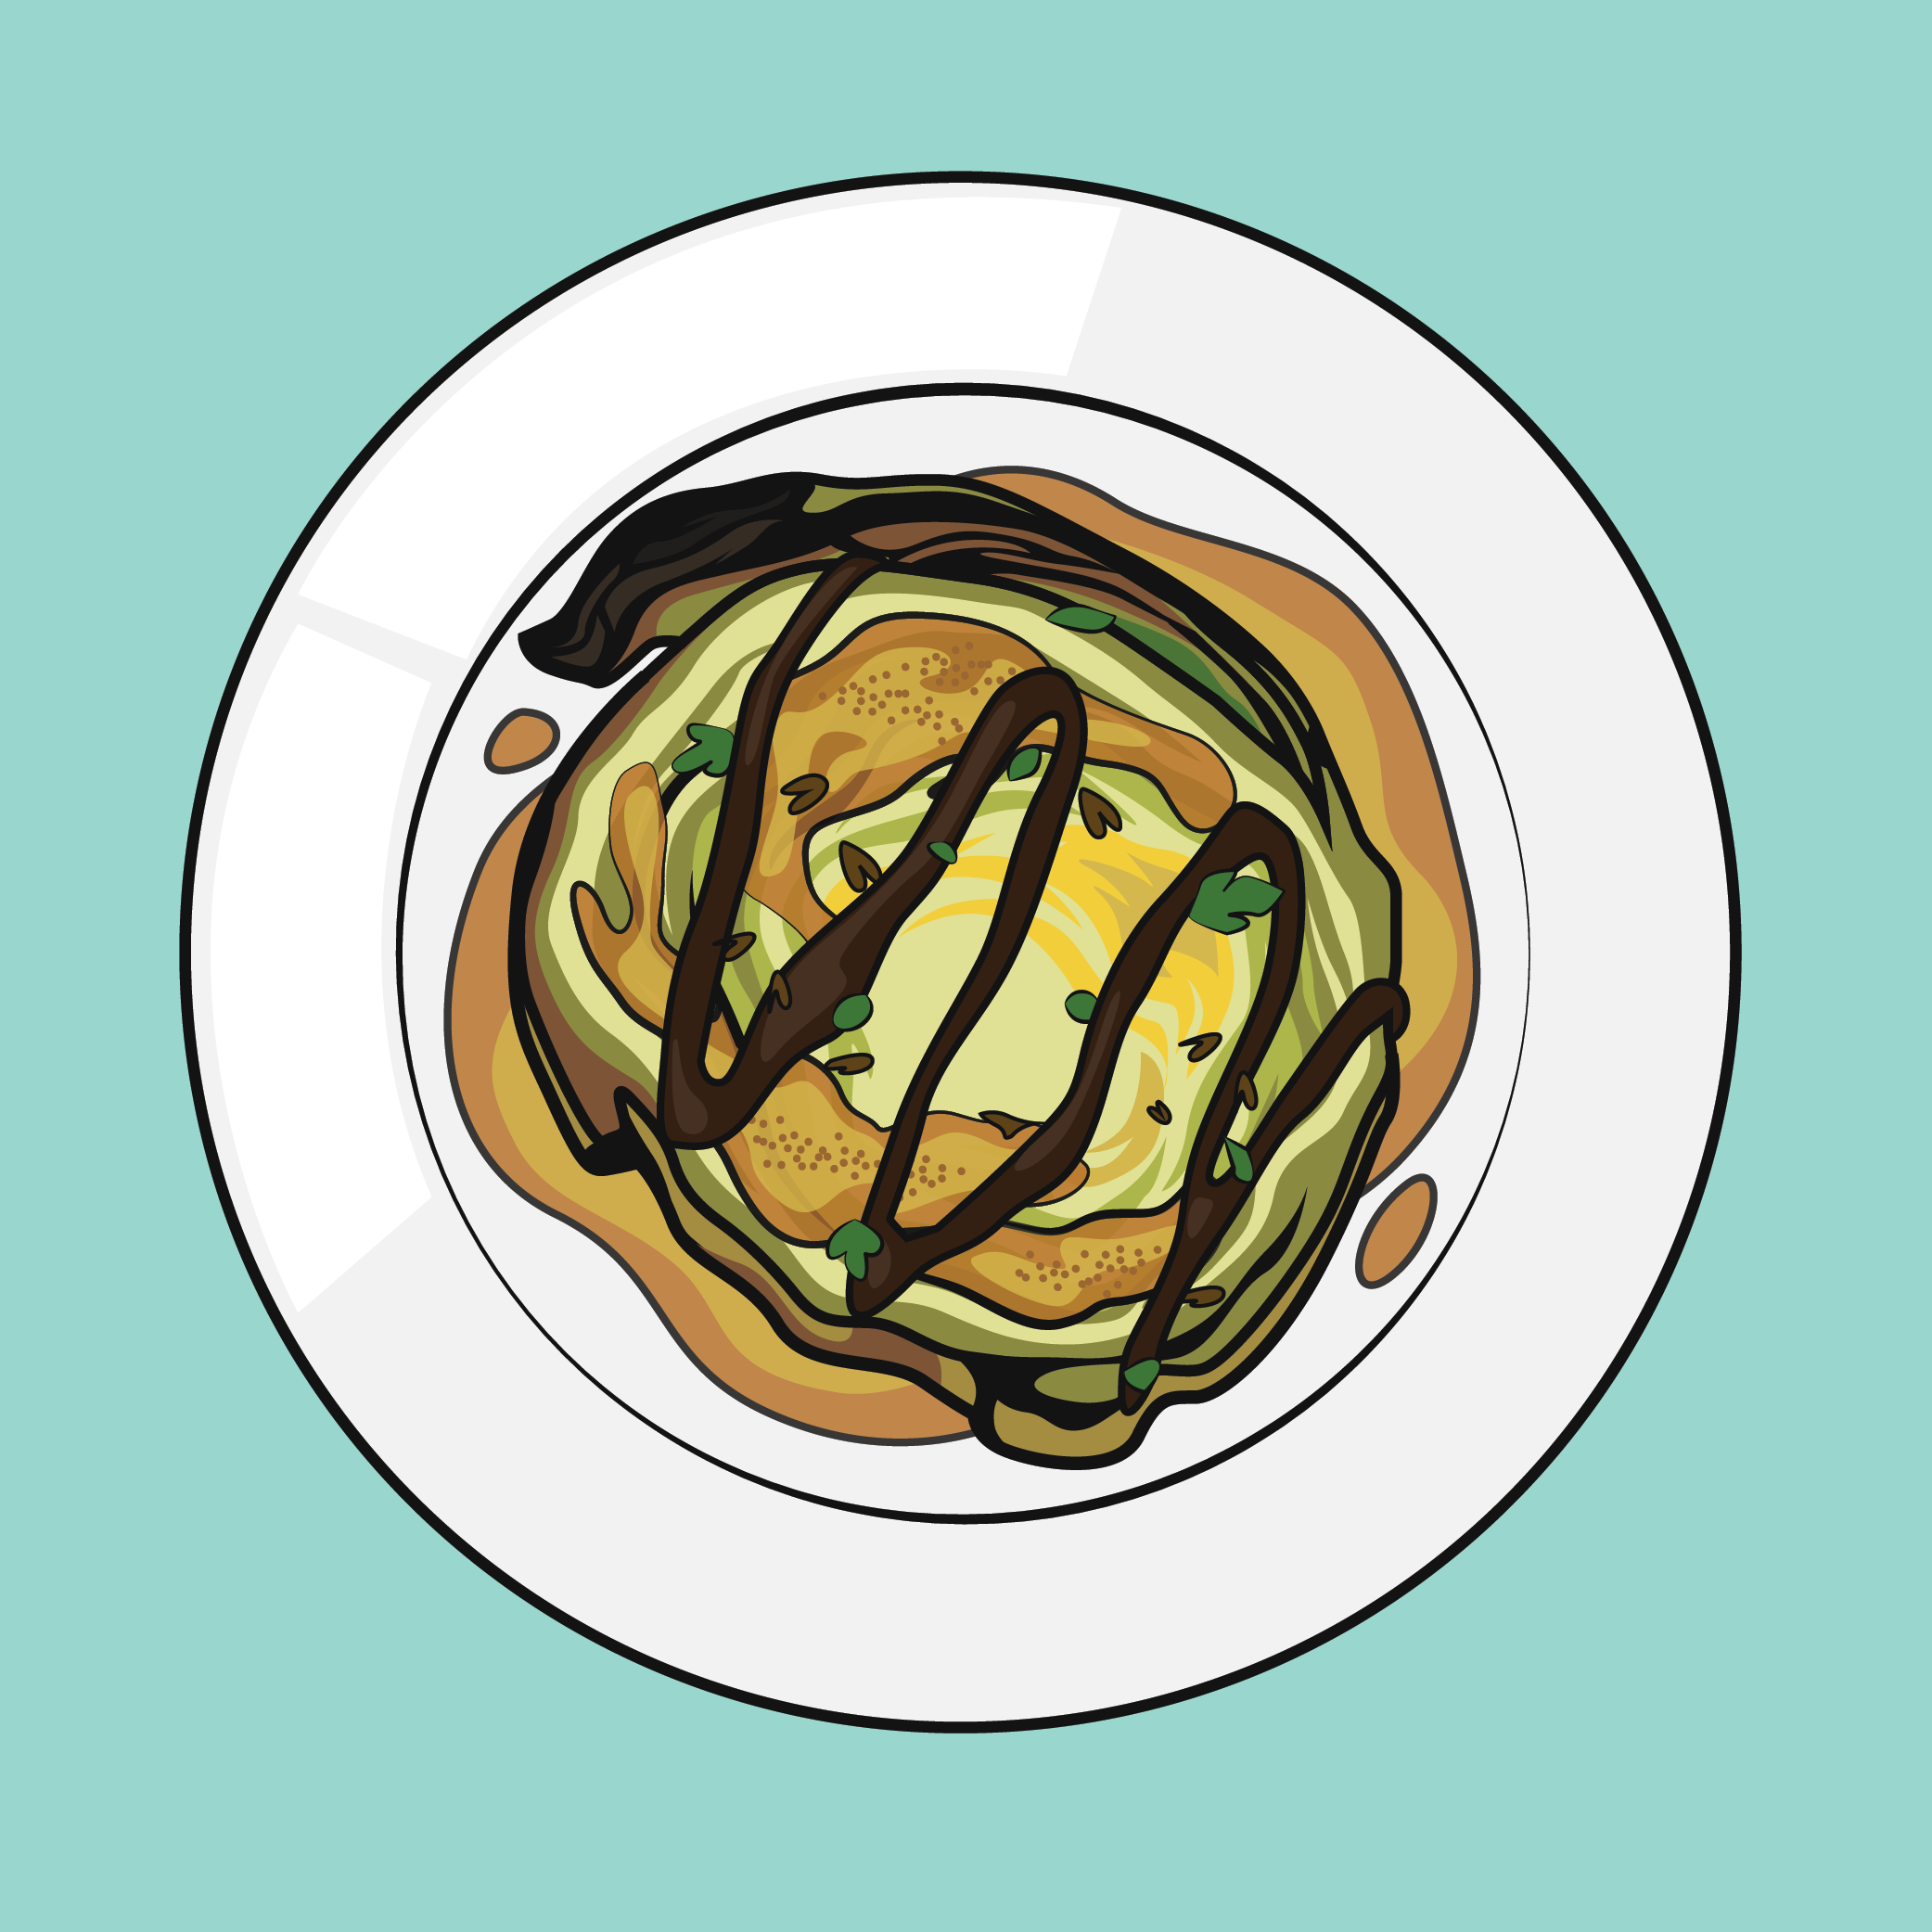 A dish of strange food, looking somewhere between pancakes, mashed potatoes, and a garnished steak.